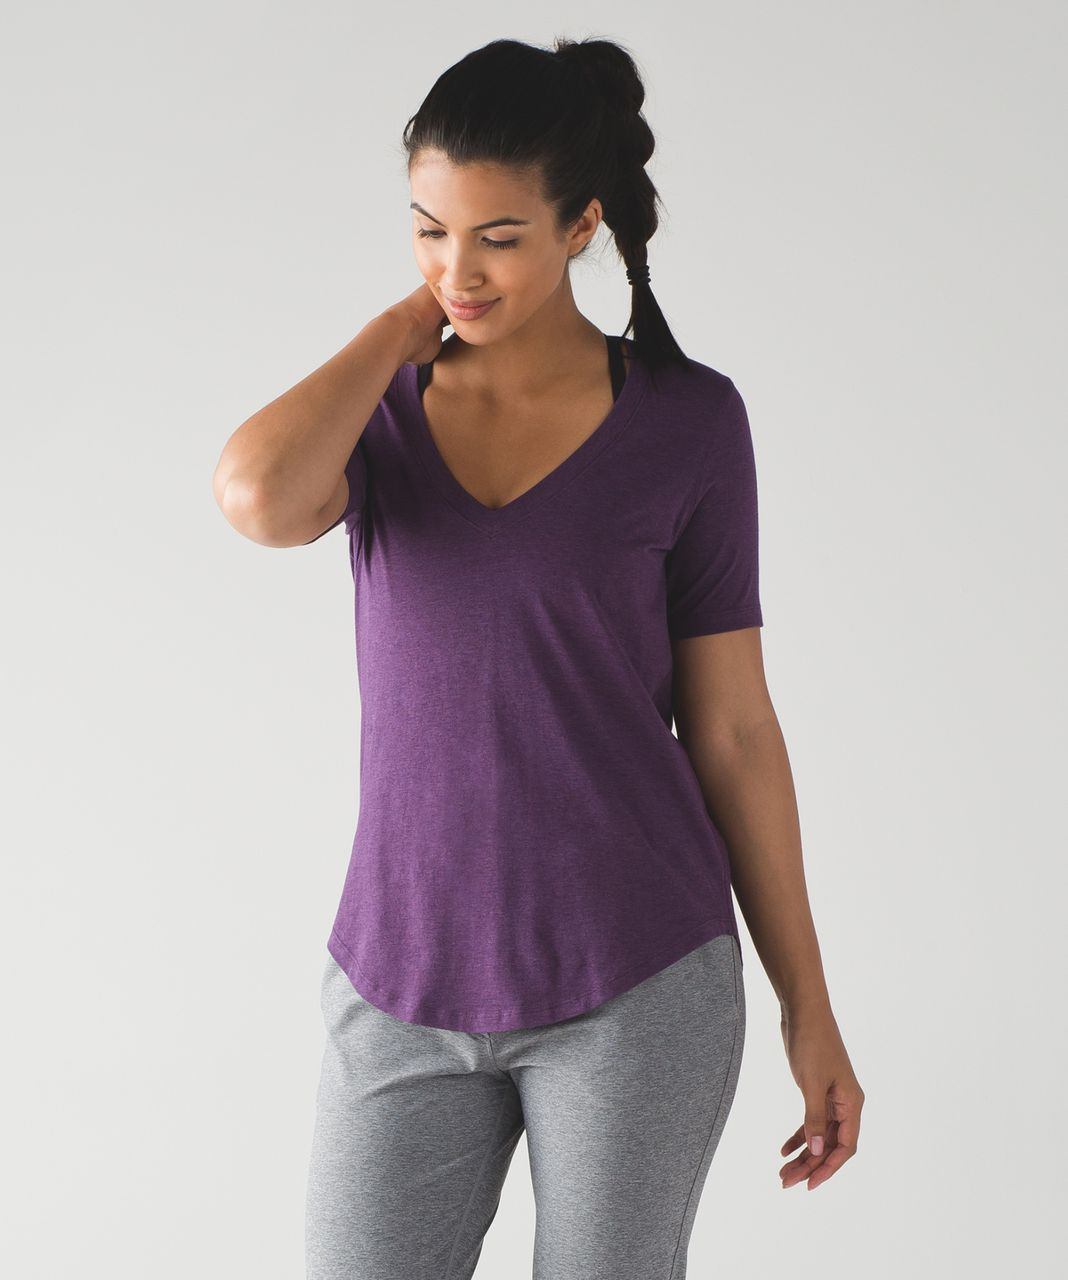 Lululemon Love Tee III - Heathered Darkest Magenta